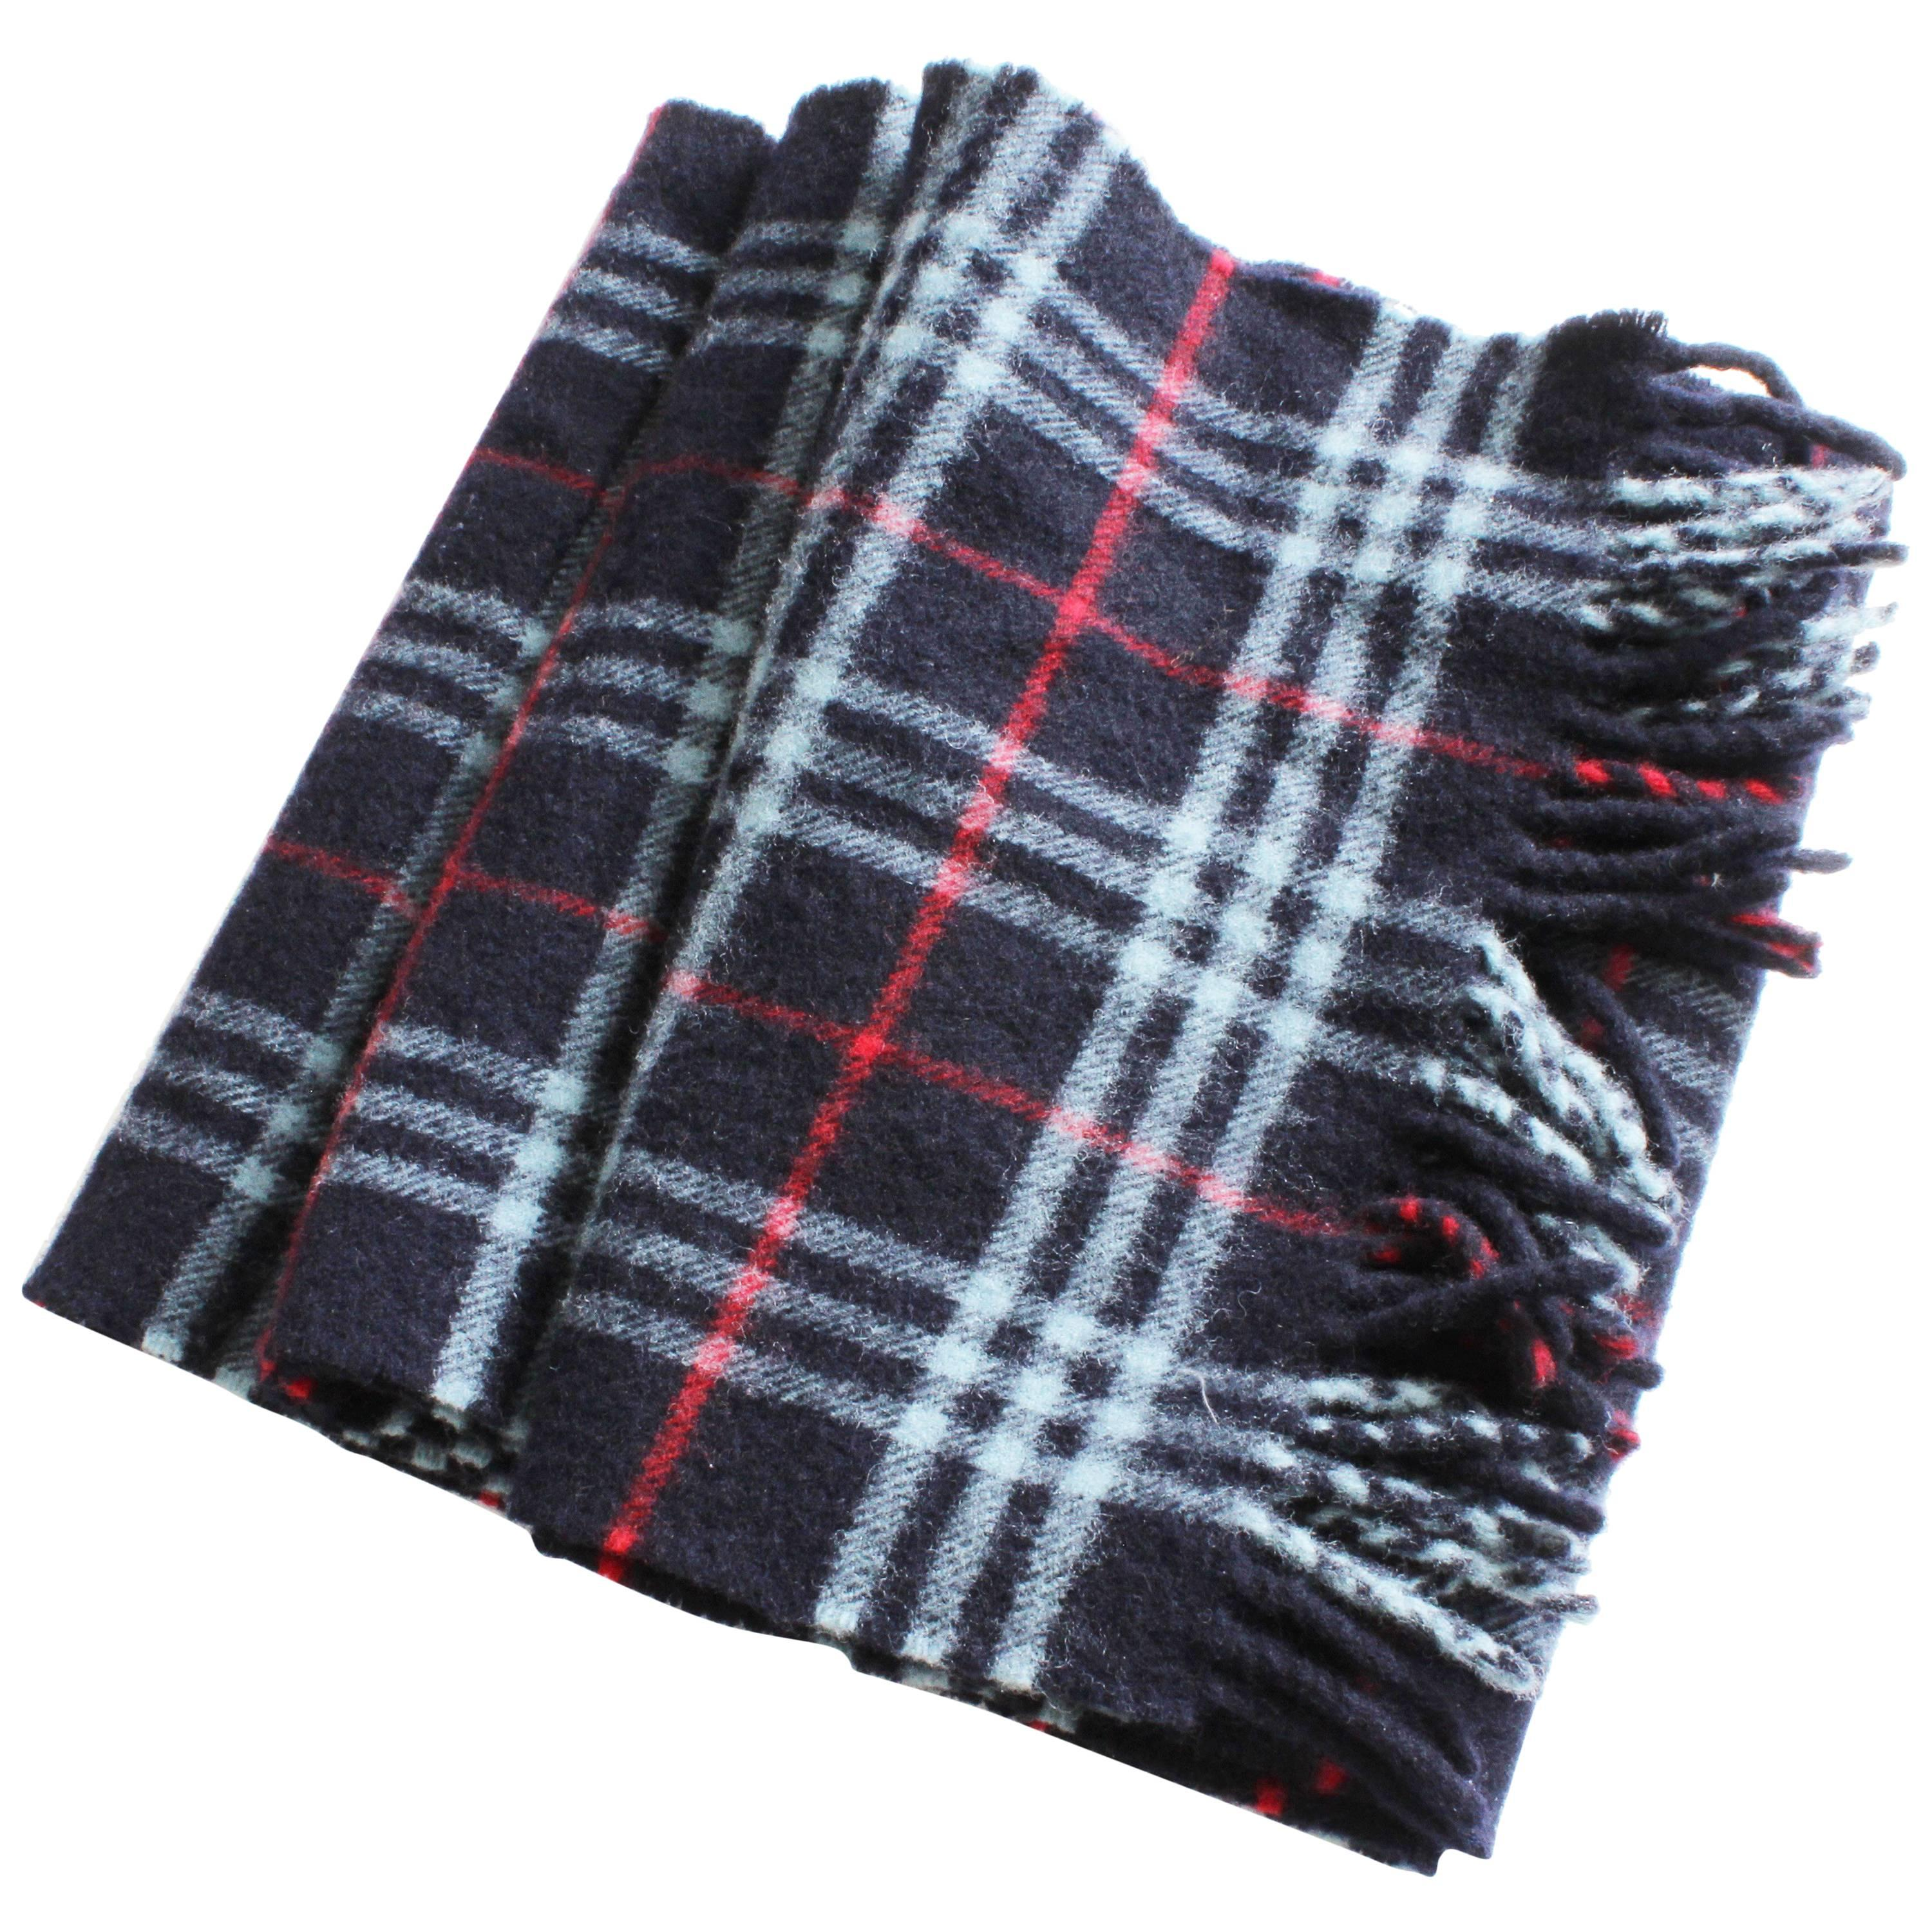 Burberrys London Lambswool Scarf Blue Red White Plaid Check with Fringe at  1stdibs a16b1fa8461